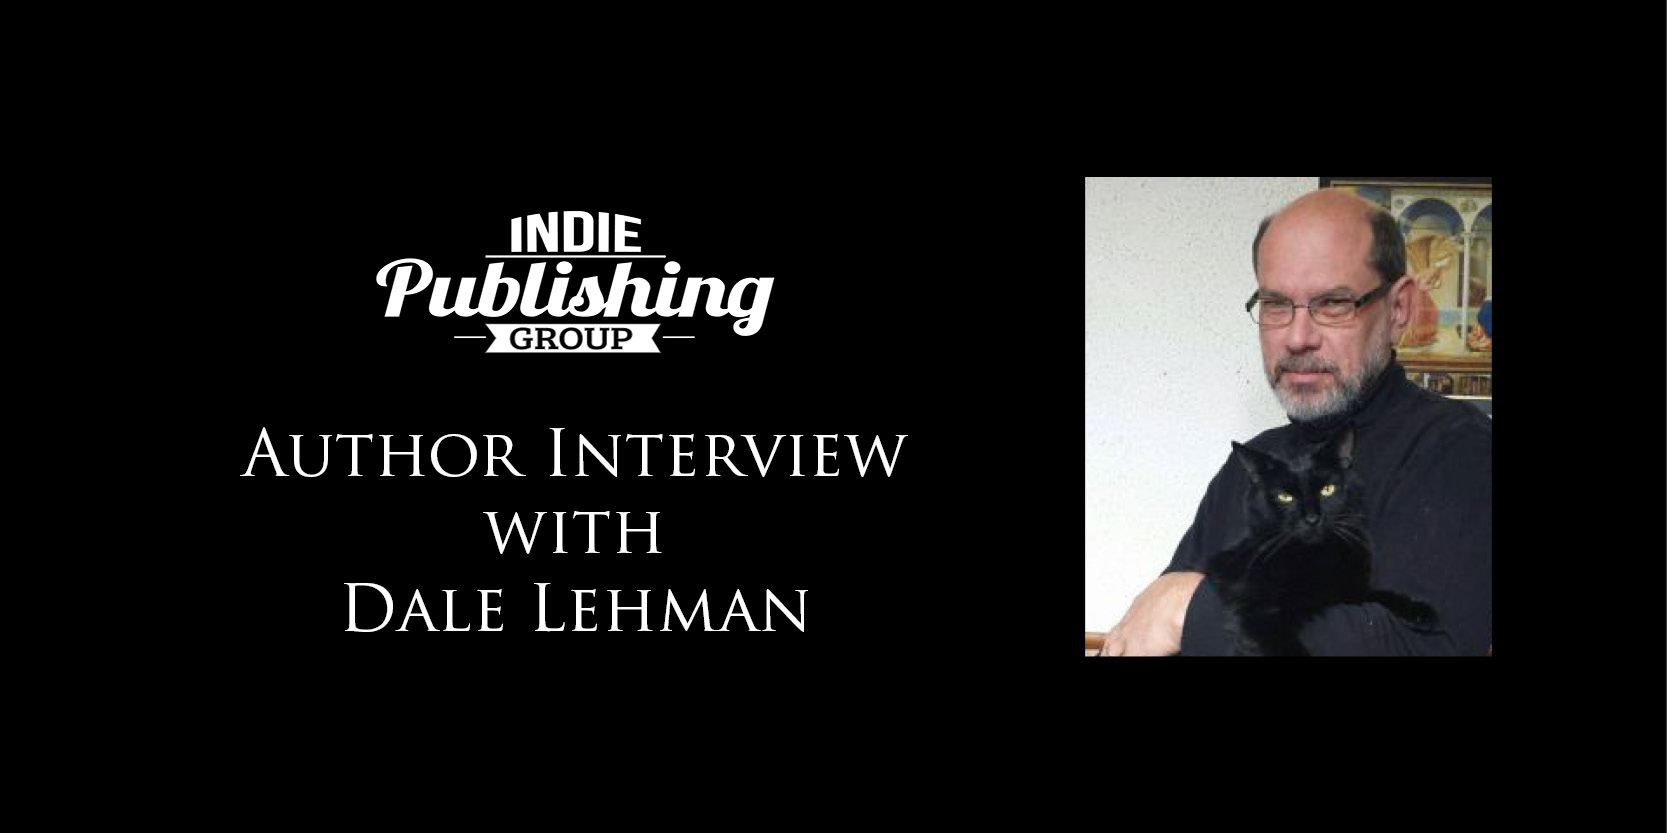 Author Interview with Dale Lehman